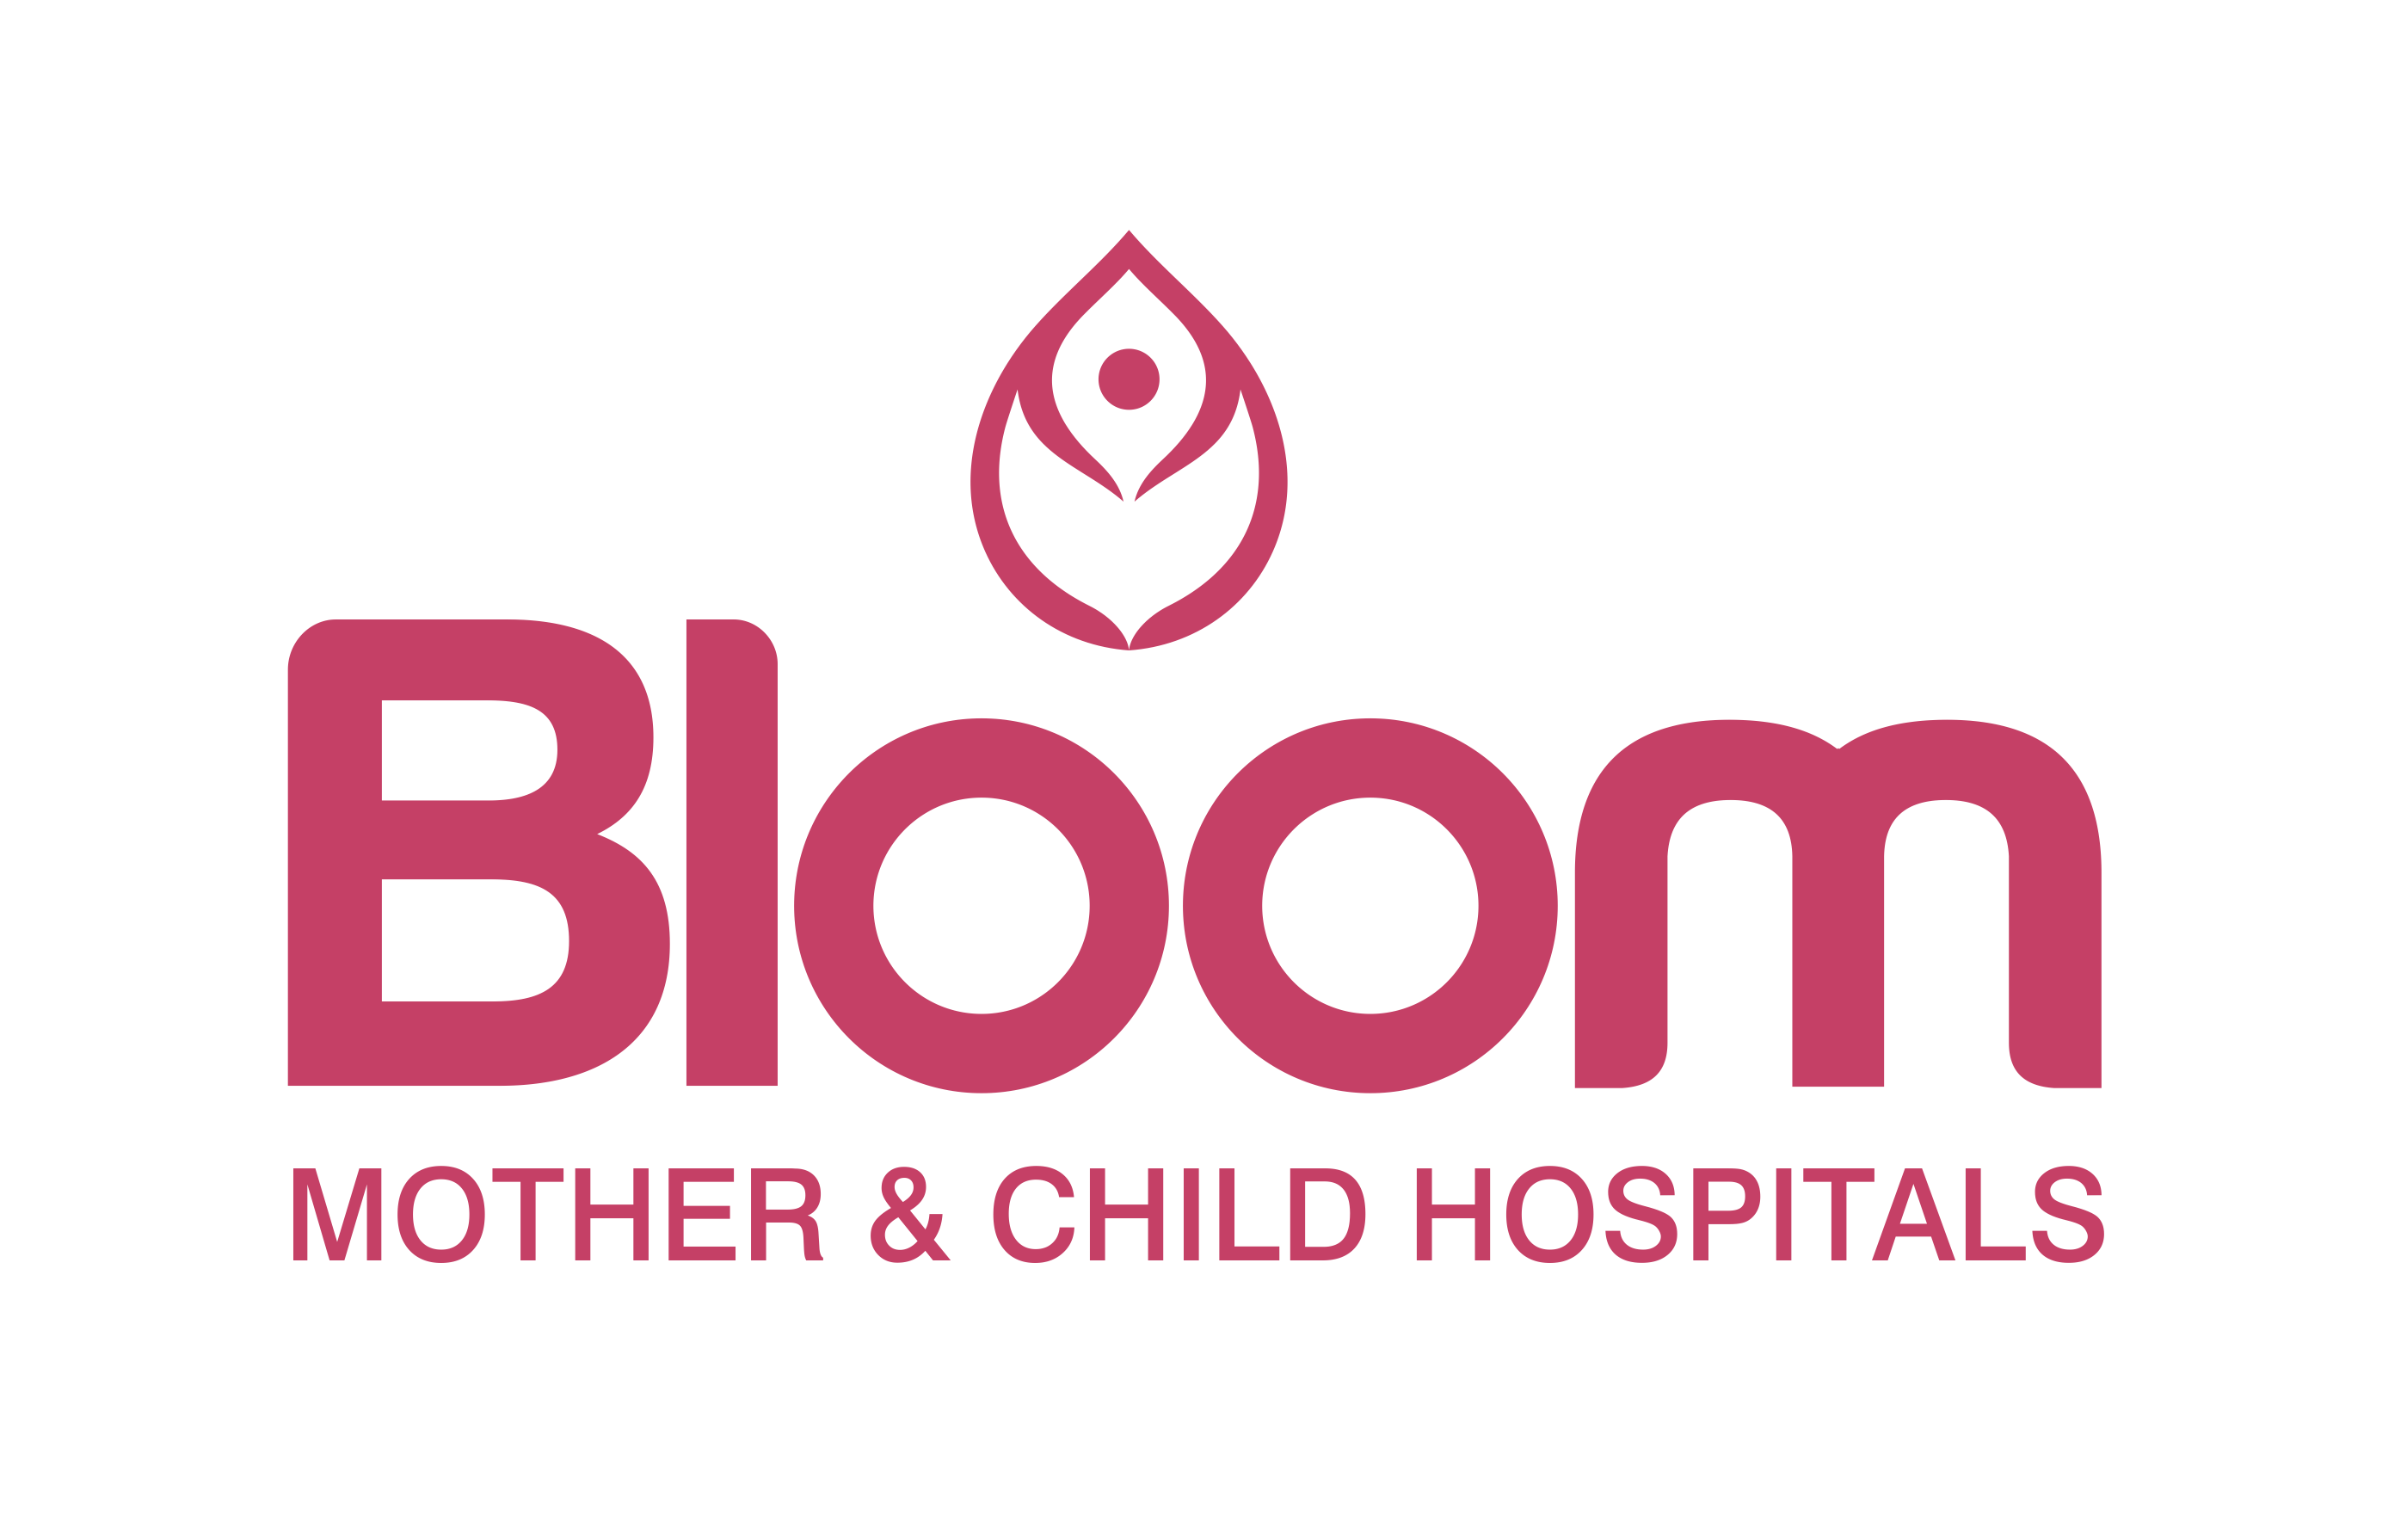 Bloom Mother & Child Hospital - Sikh Village | Lybrate.com